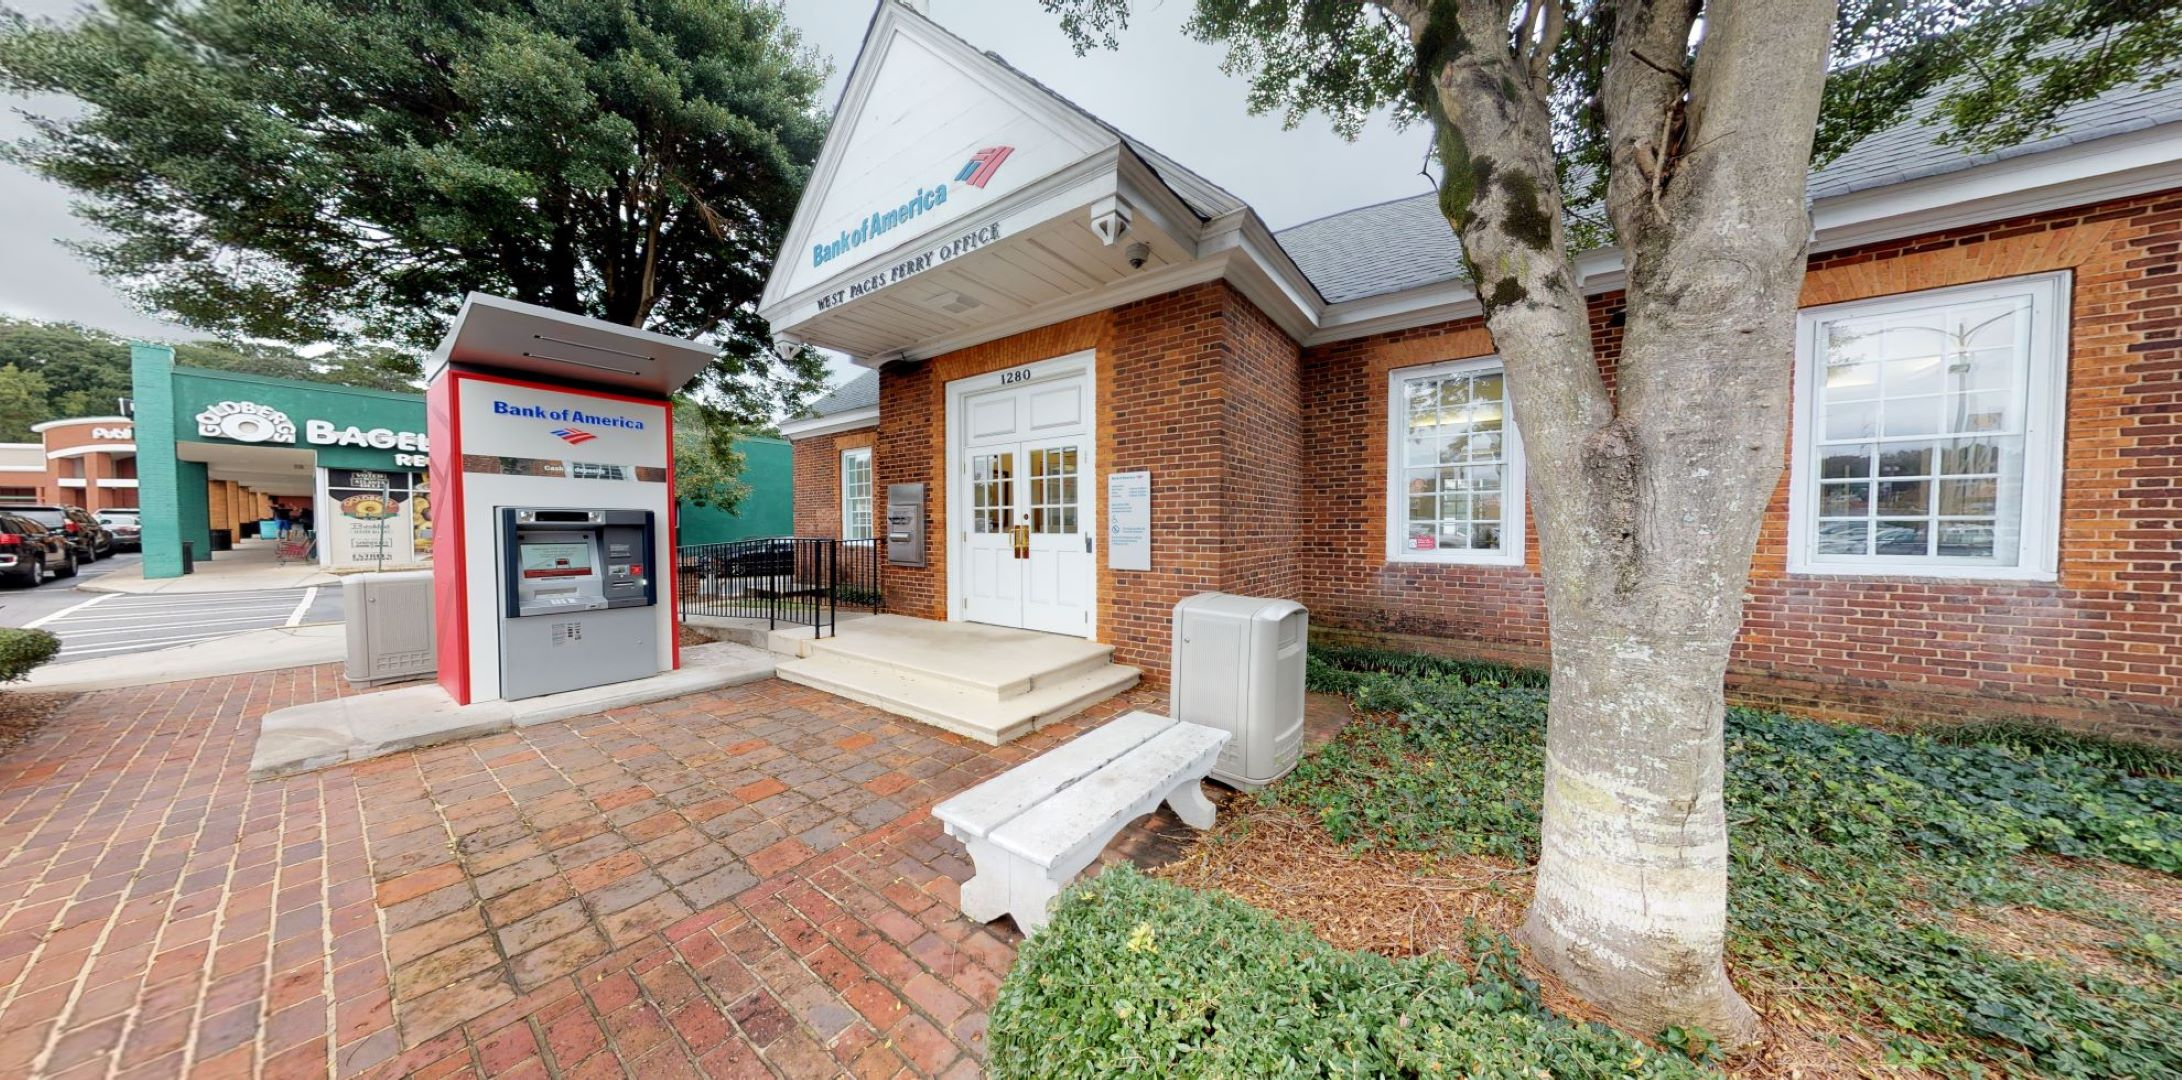 Bank of America financial center with walk-up ATM   1280 W Paces Ferry Rd NW, Atlanta, GA 30327